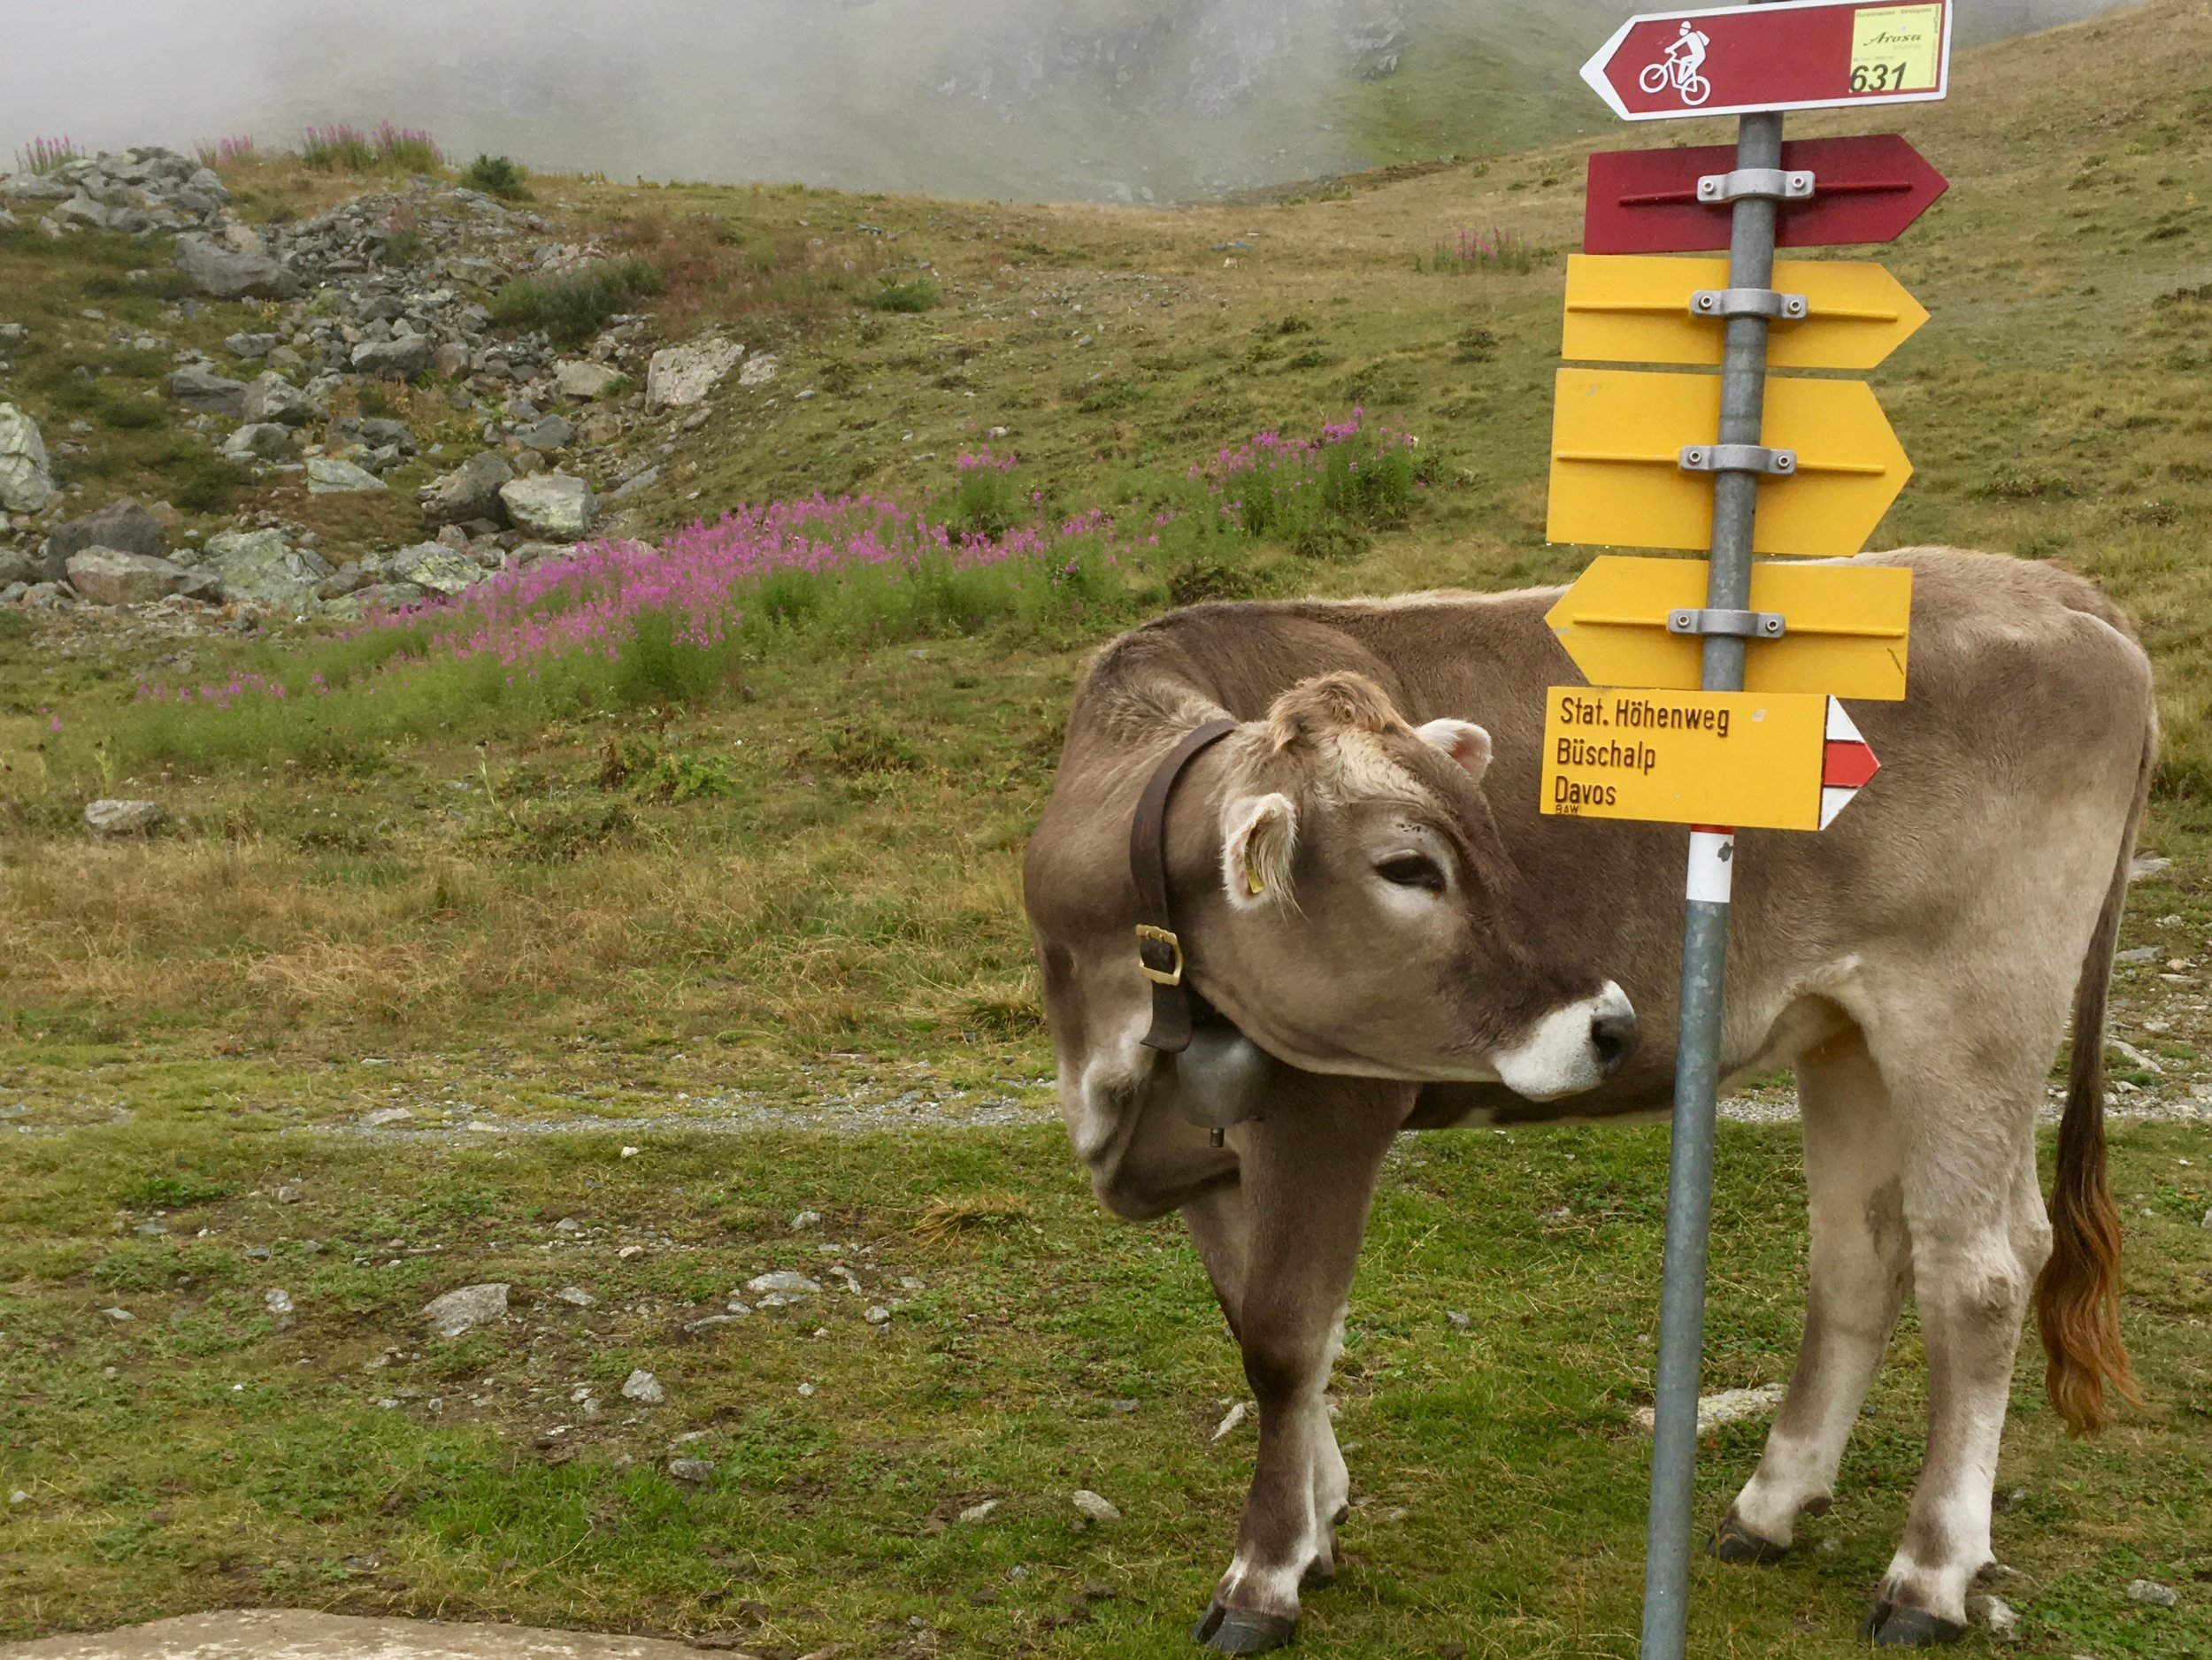 A cow on a mountain near Davos, Switzerland. With bell, without horns. (C) Remko Tanis